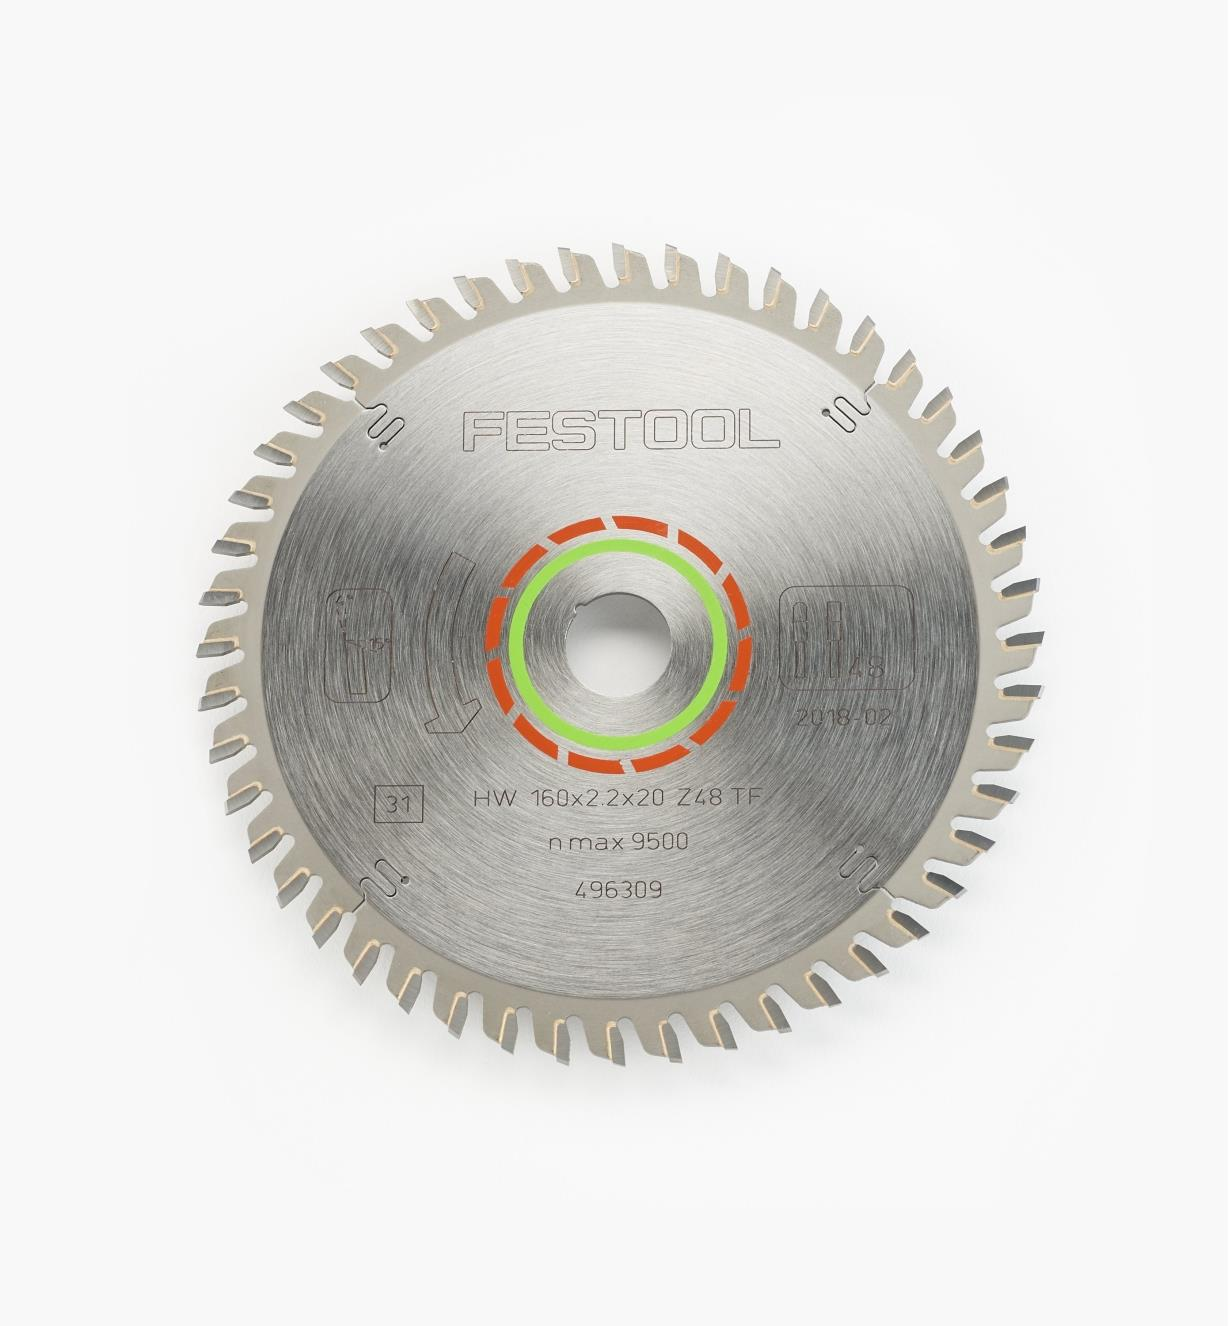 ZA496309 - Solid Surface/Laminate TS 55 Saw Blade